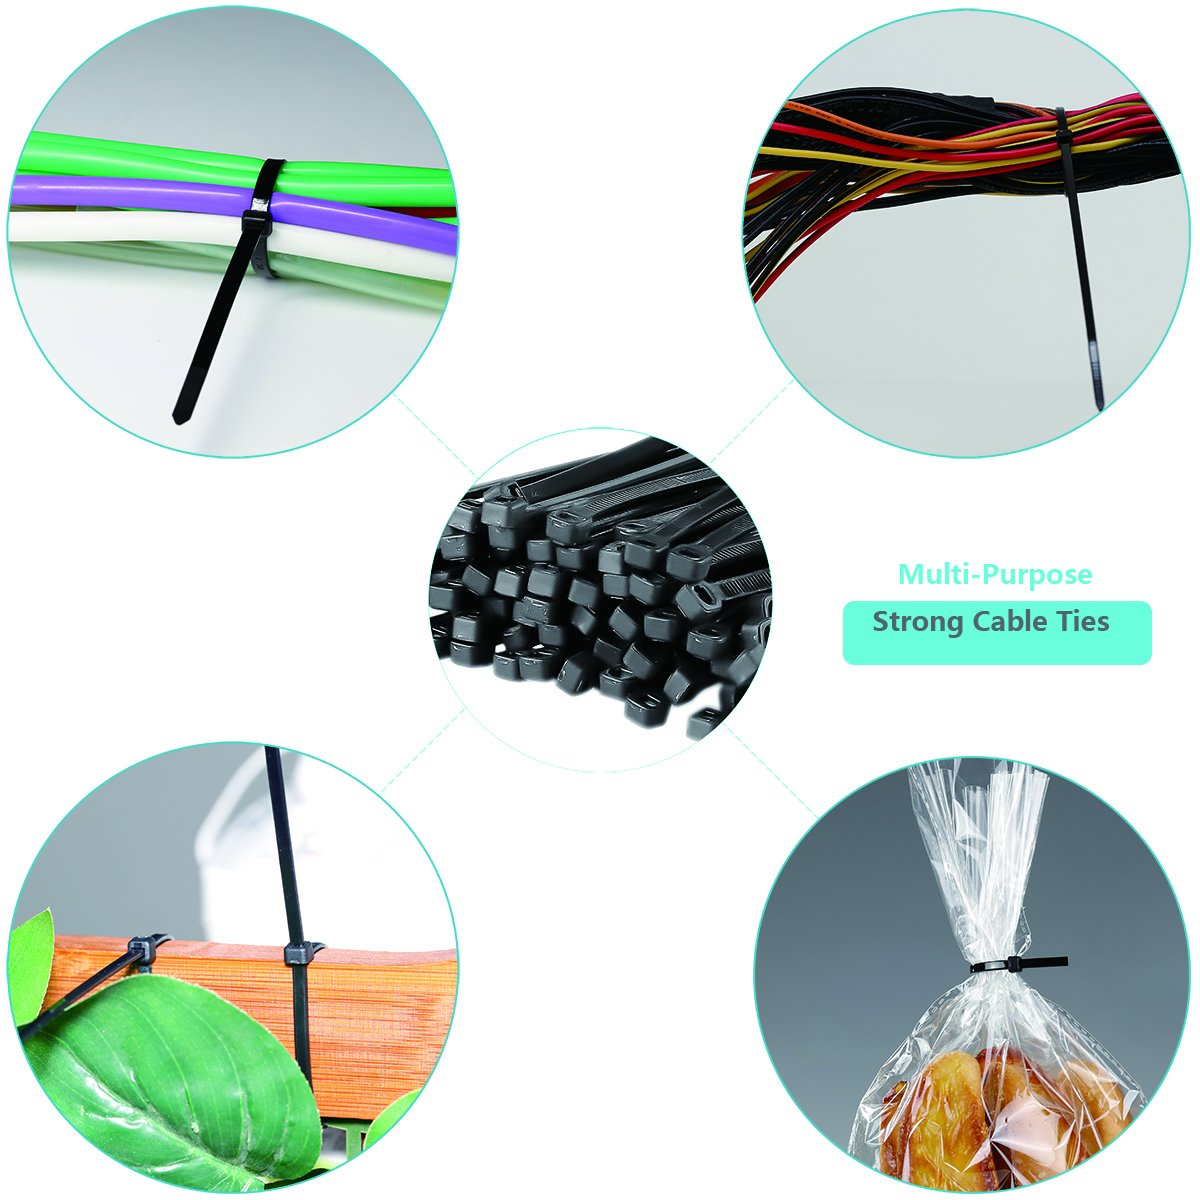 AMANEER Cable Zip Ties Black Flexible Nylon Wire Ties Ajustable Cable Cord Management For Electrical Accessories (500 Variety Pack) by AMANEER (Image #2)